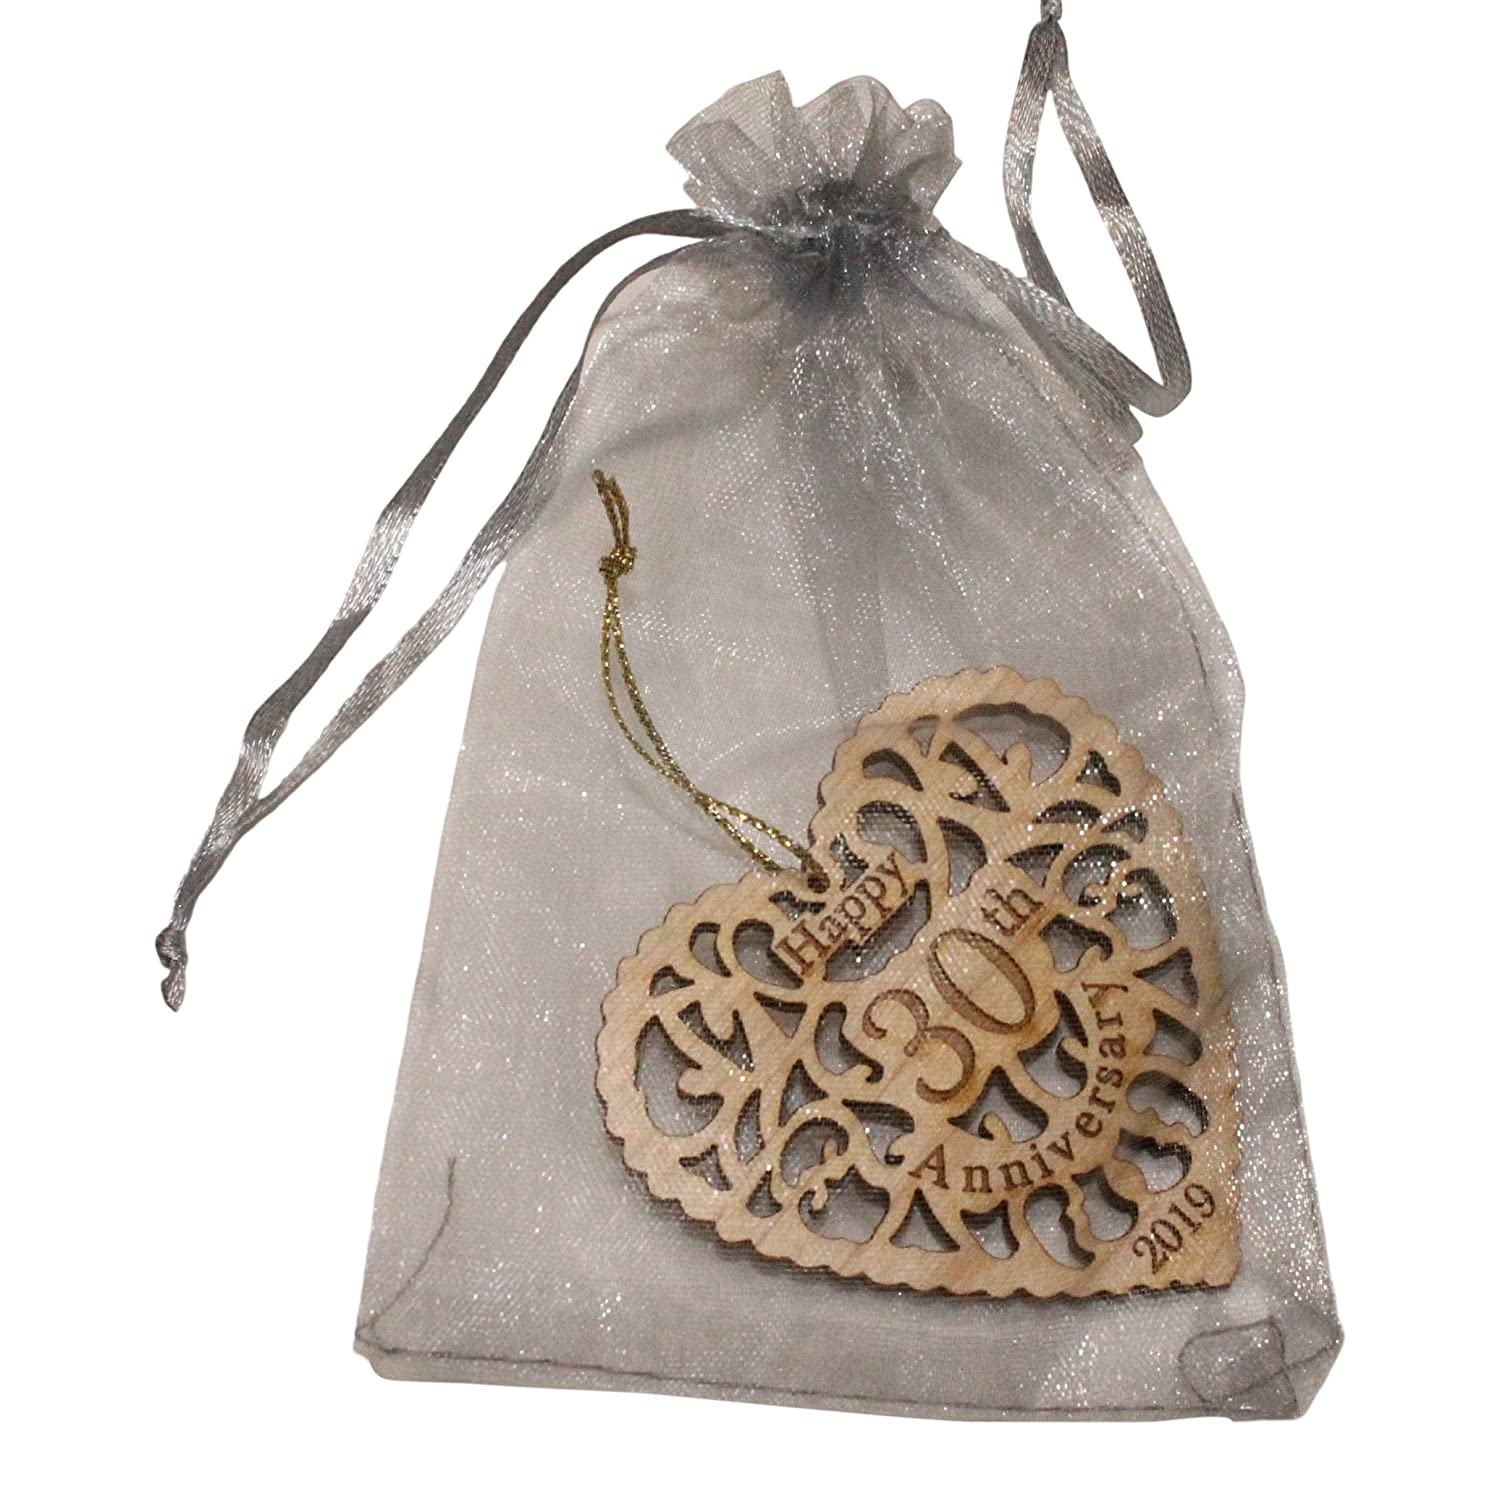 Twisted Anchor Trading Co 30th Anniversary Ornament 2019 Comes In A Pretty Organza Gift Bag So It S Ready To Give Beautiful Laser Cut Wood Detail Heart Shaped Happy Anniversary Ornament Home